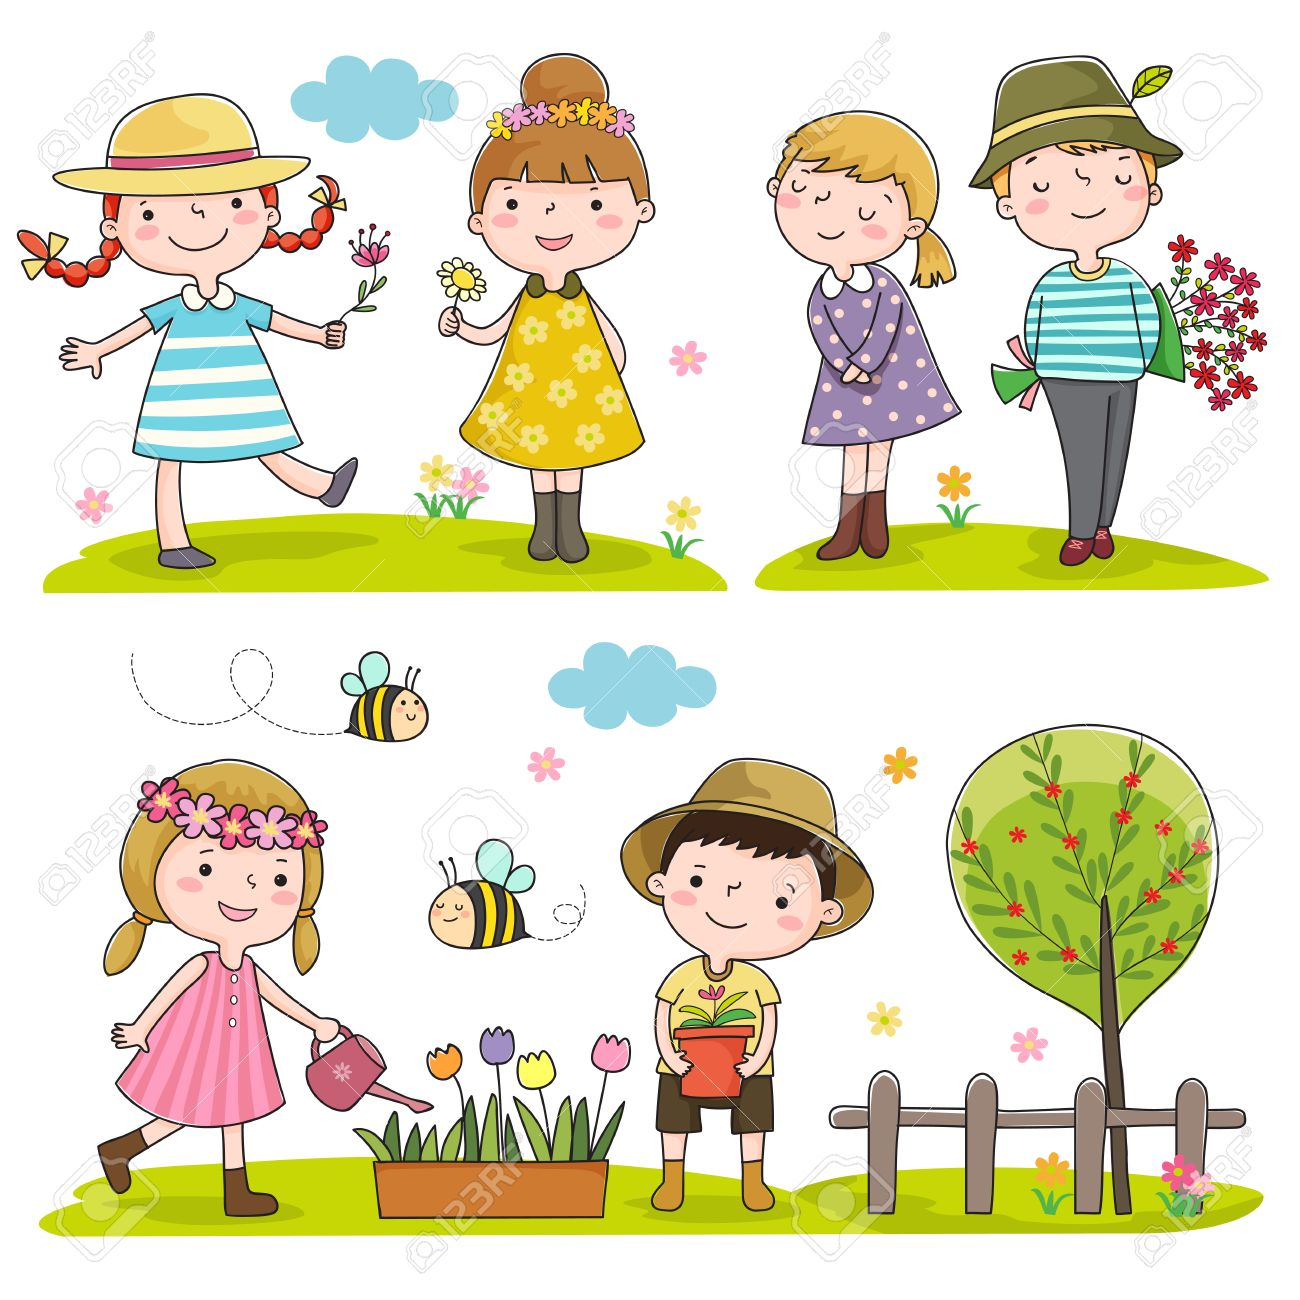 Spring Season Clipart Free Download Clip Art.